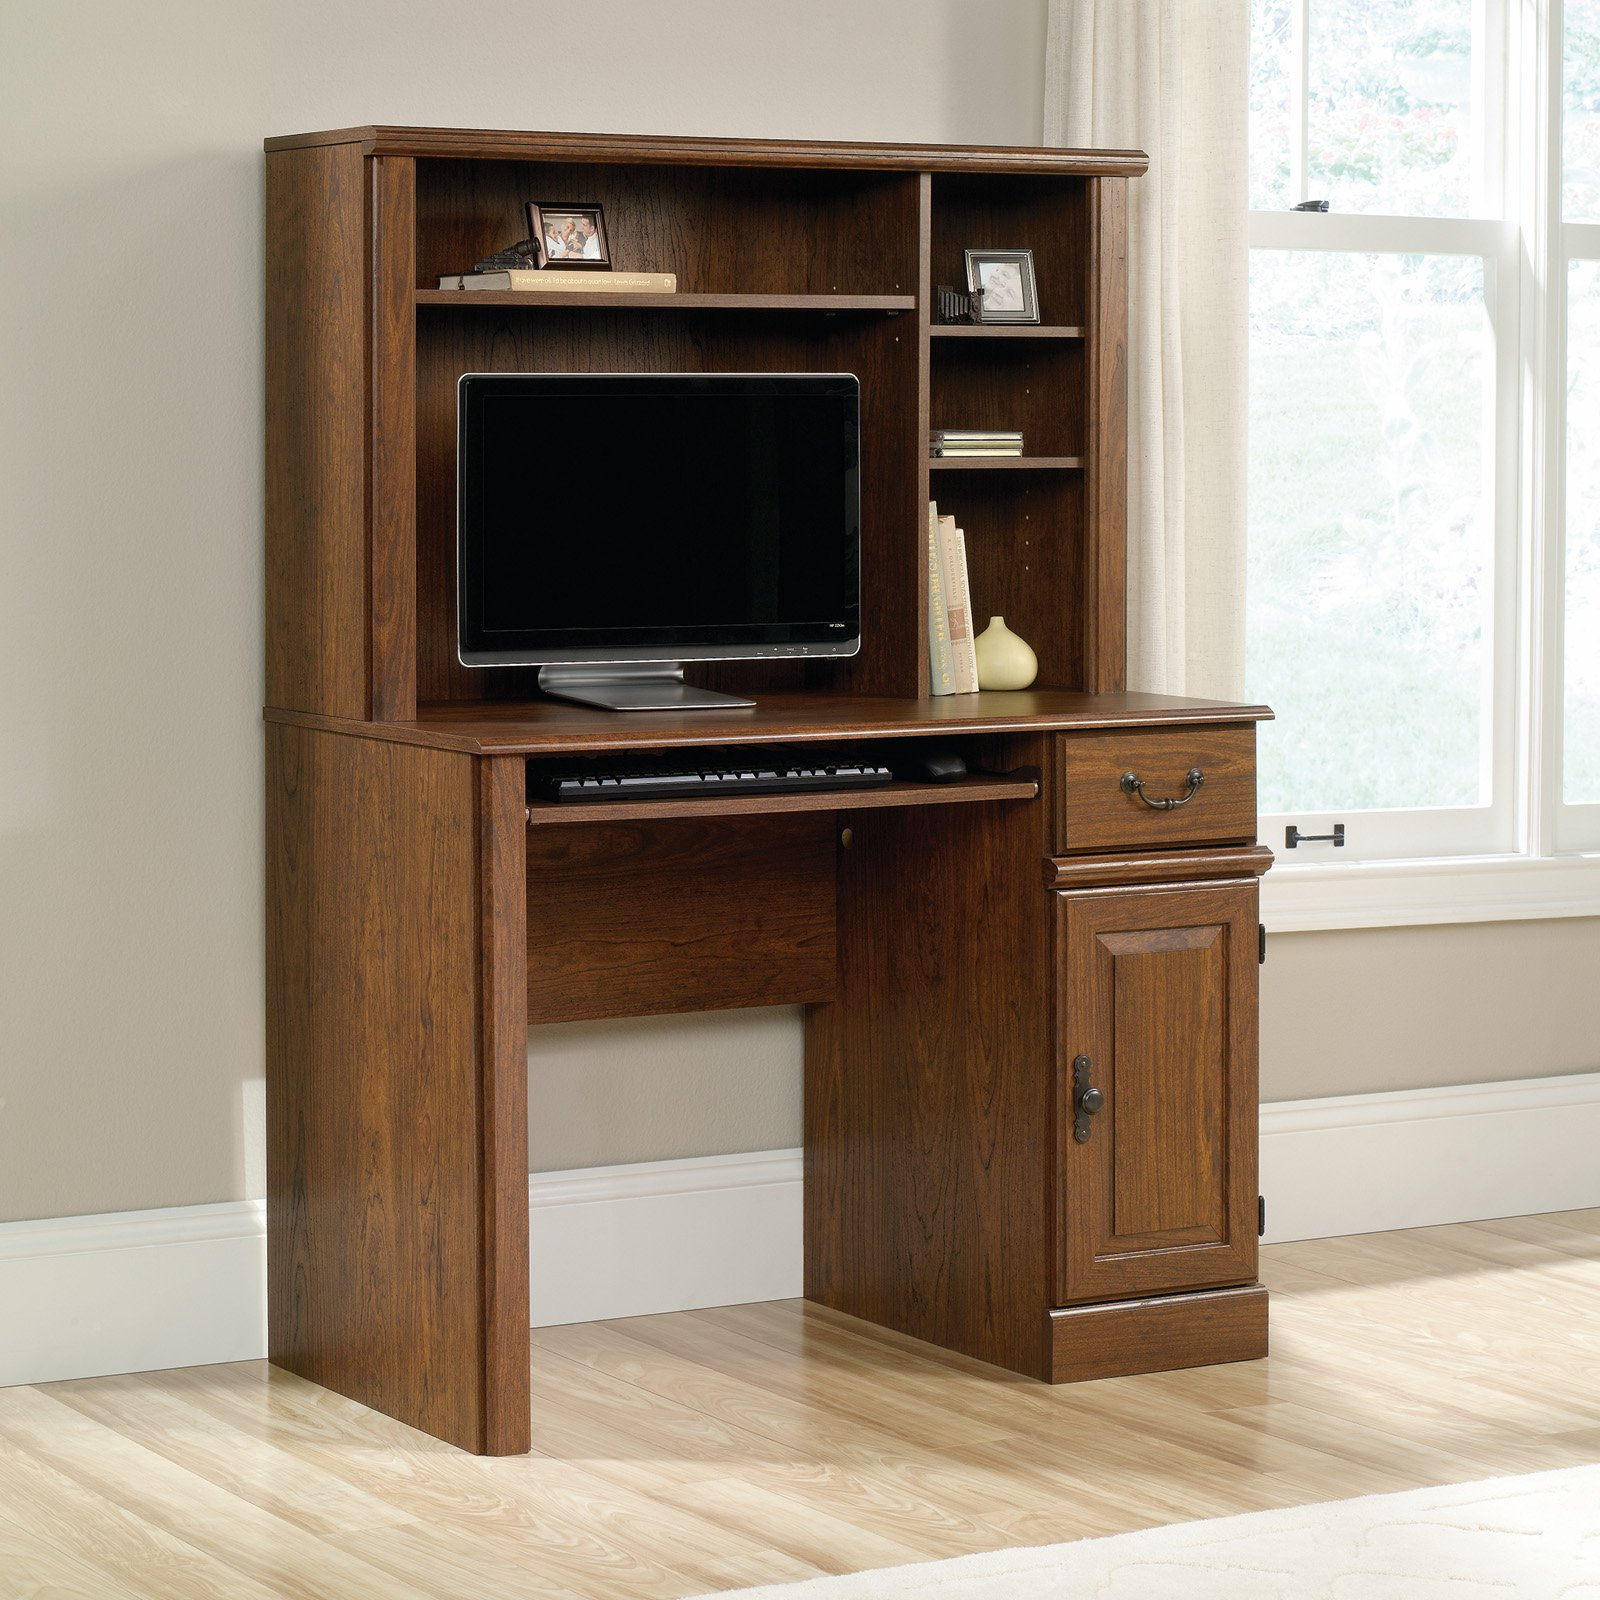 Sauder Orchard Hills 42 in. Computer Desk with Hutch